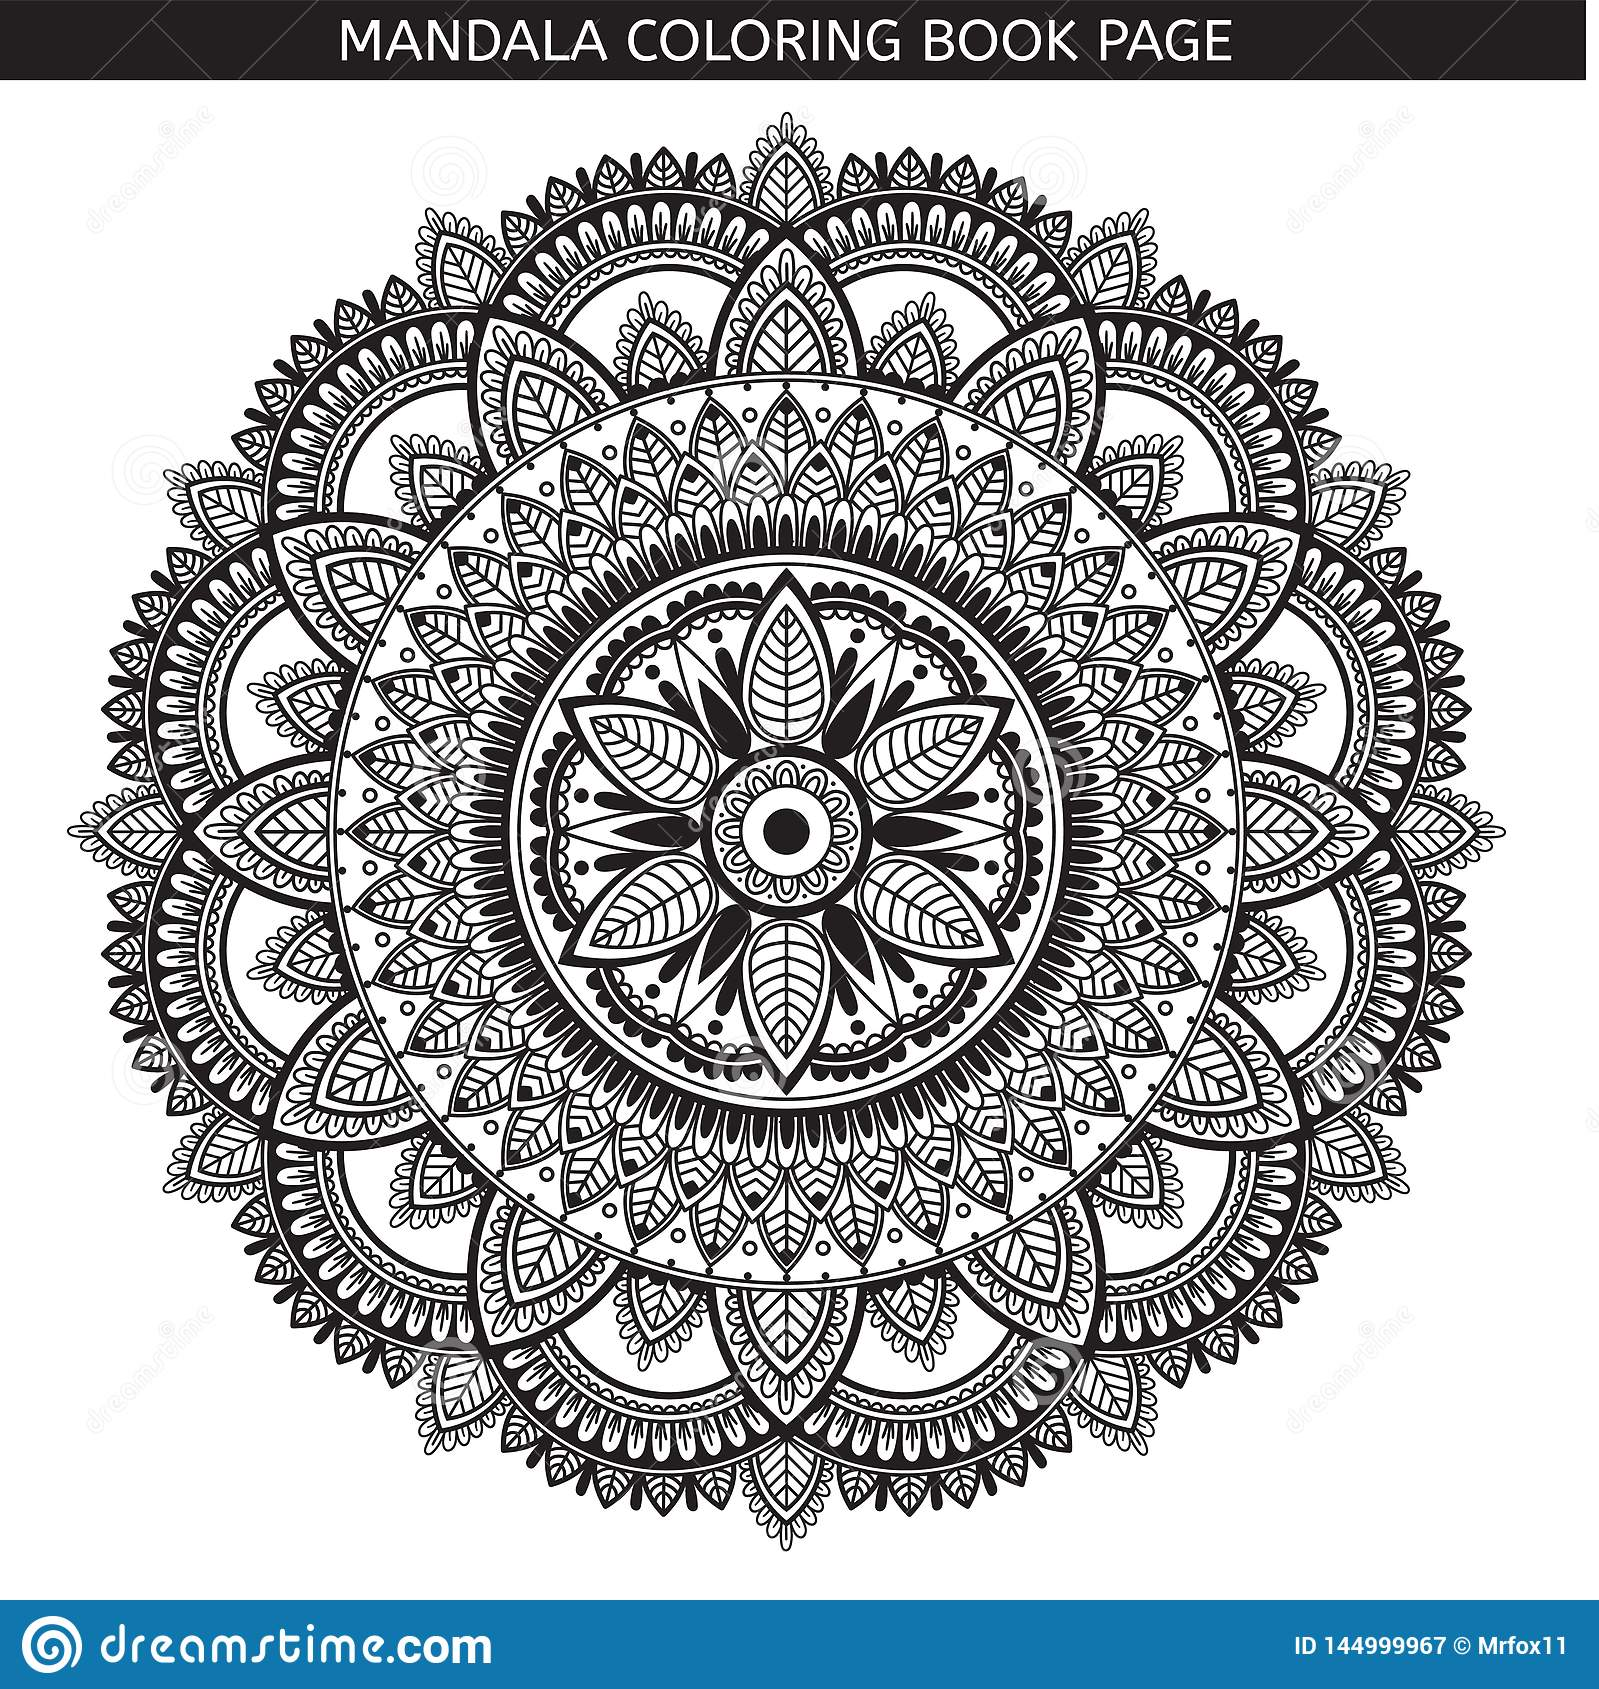 mandala coloring book page indian antistress medallion white background black outline pages vector illustration